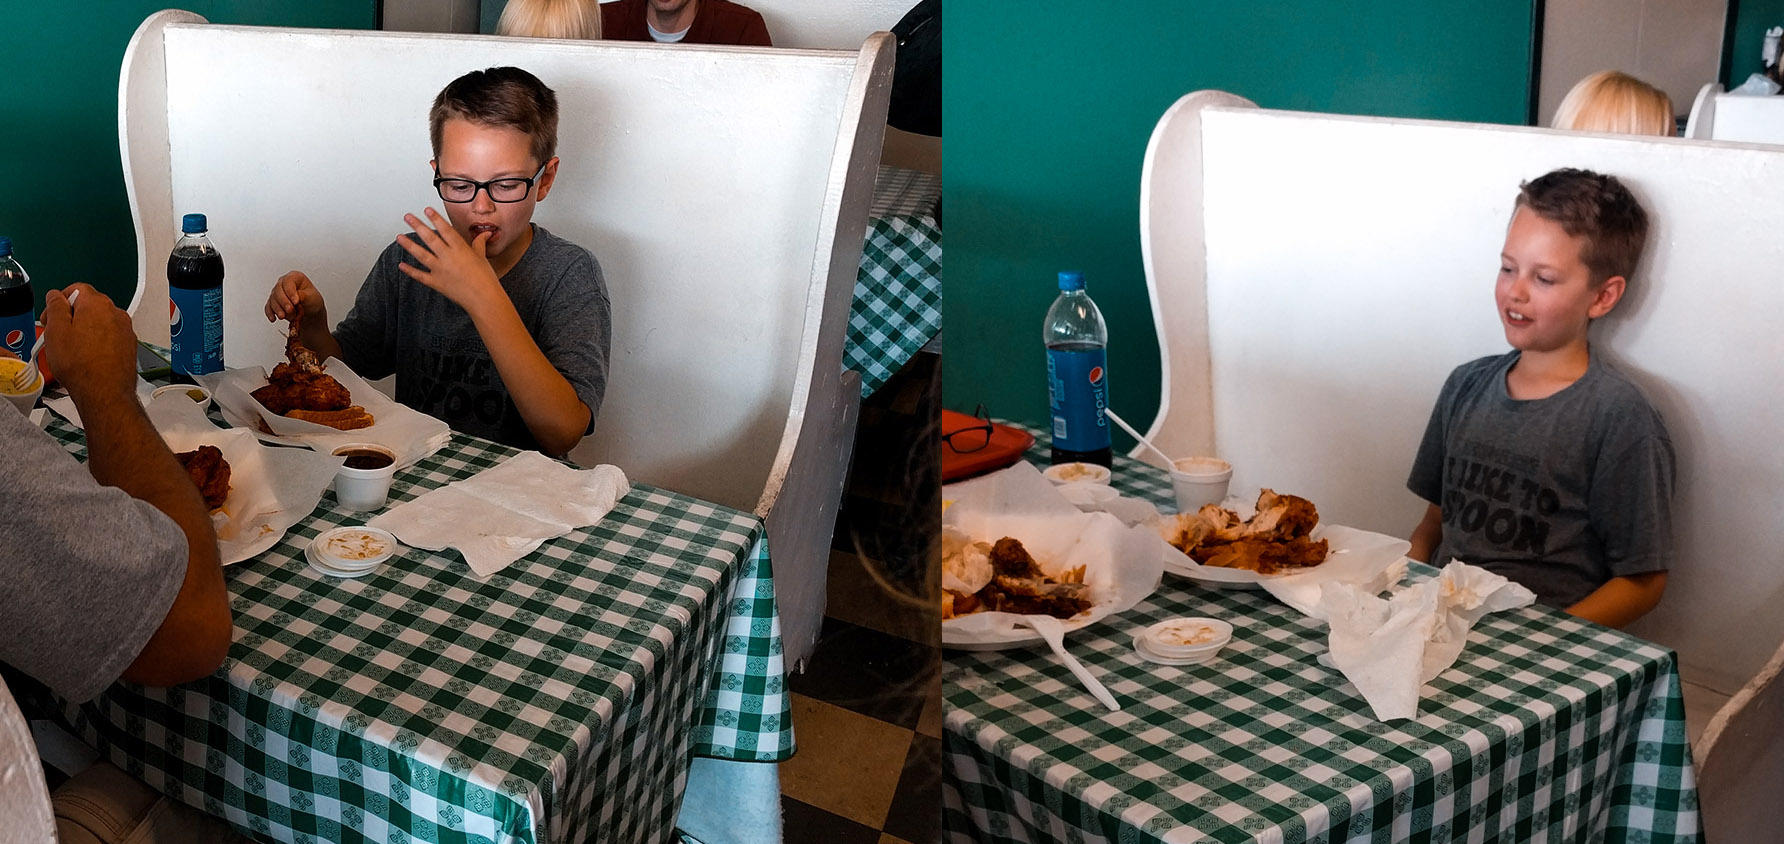 Before and after at Prince's Hot Chicken in Nashville